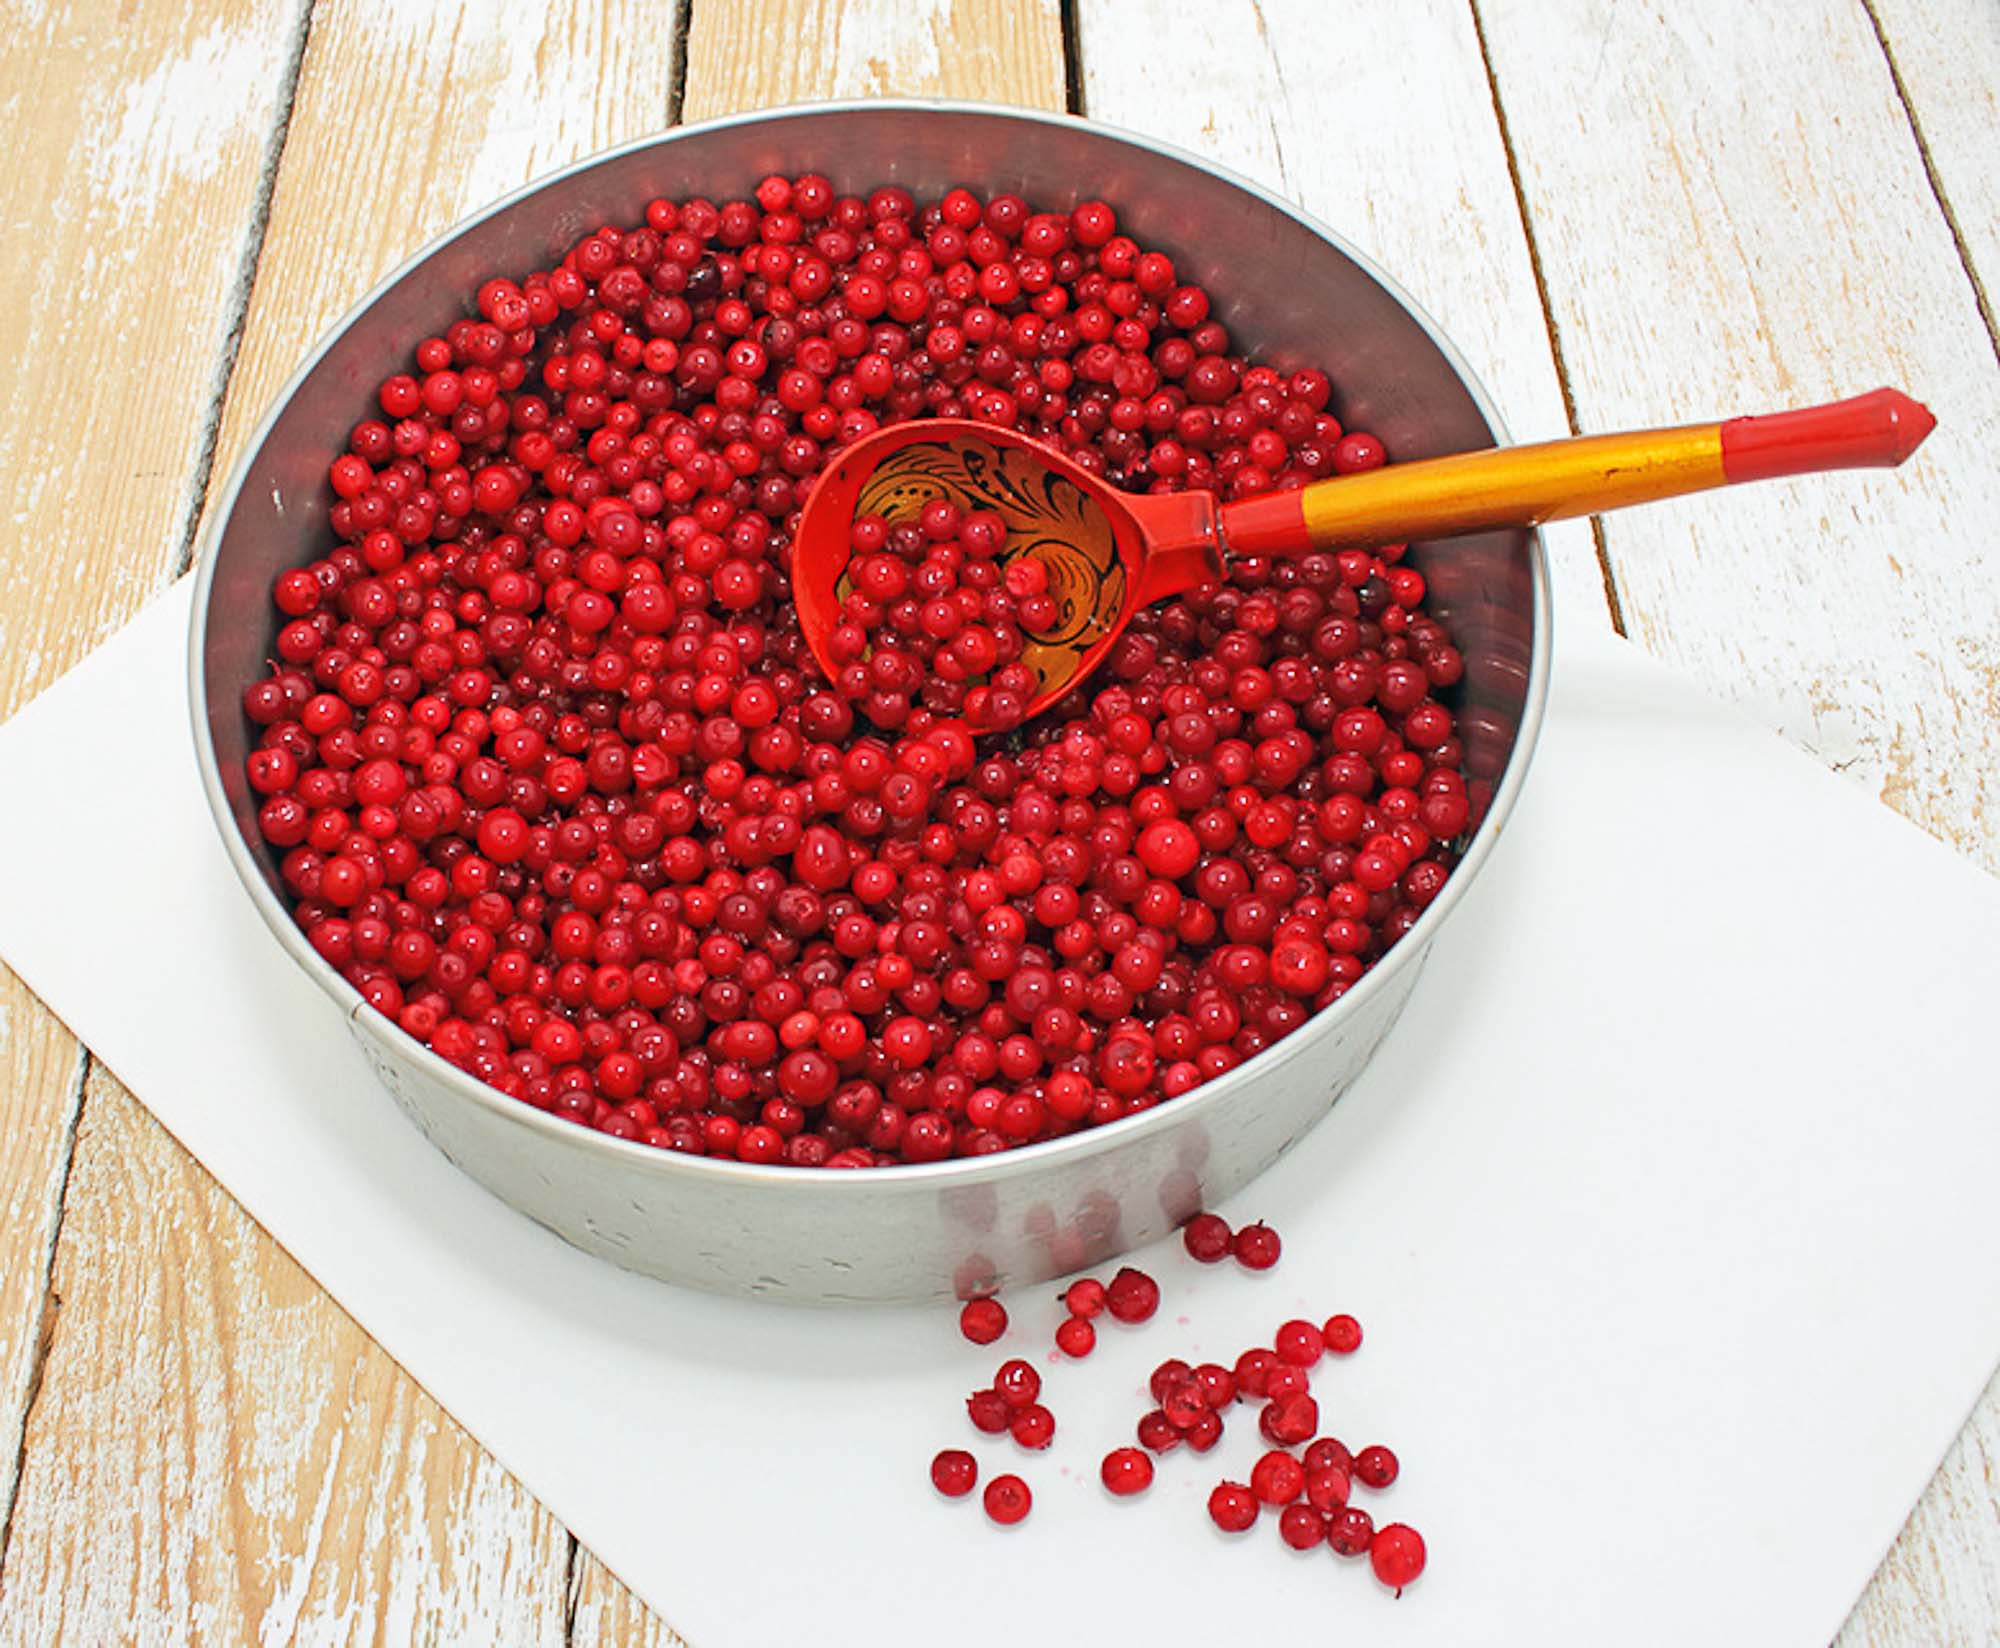 Soaked Cowberries Berries